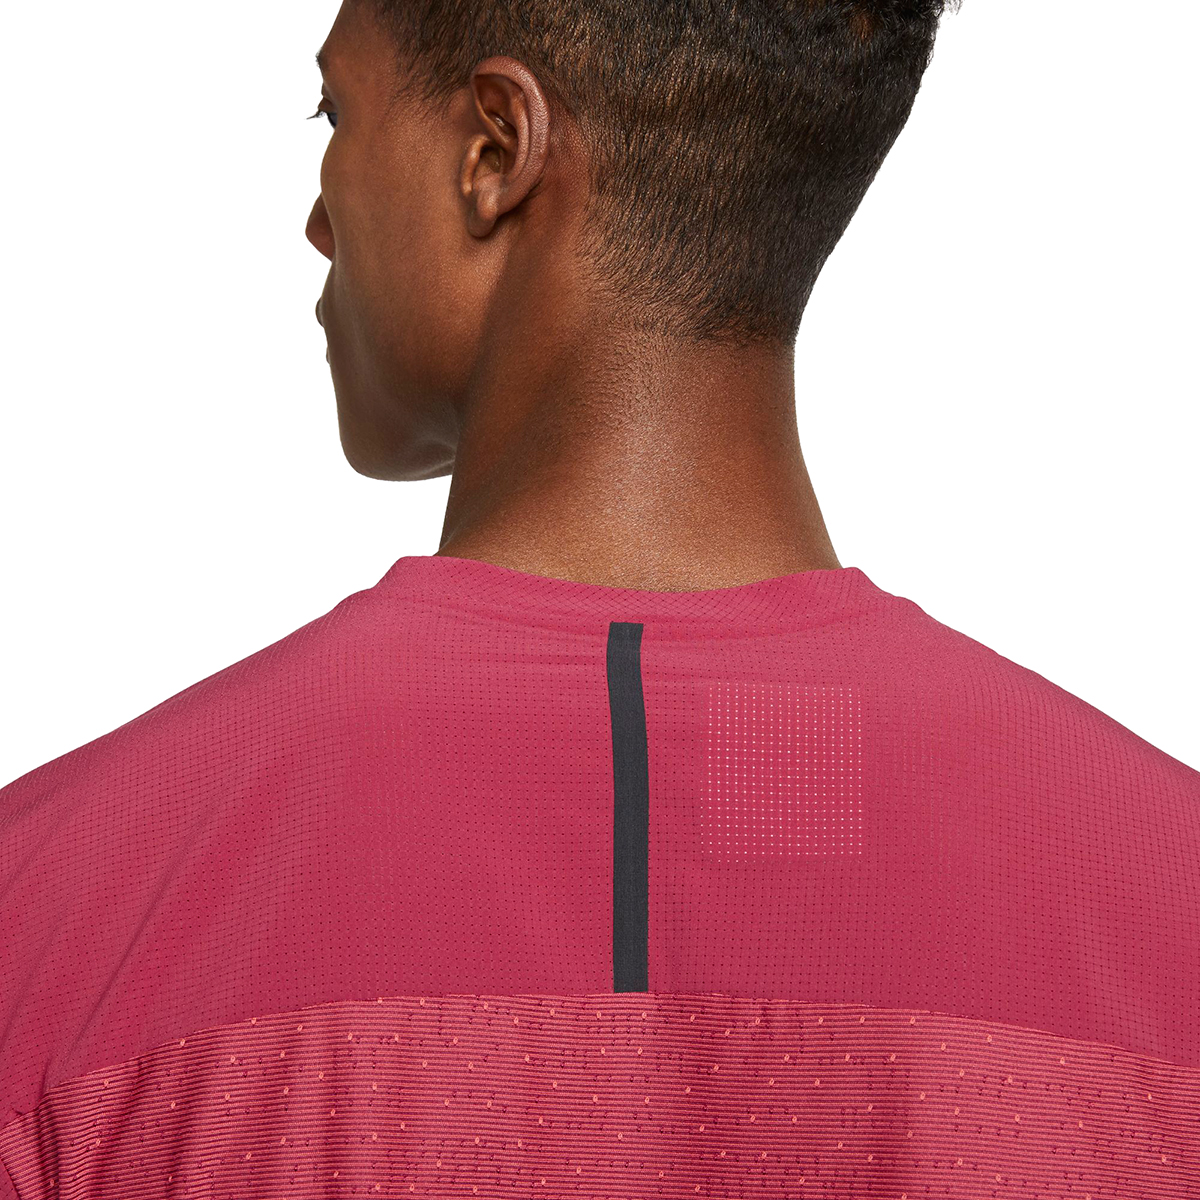 Men's Nike Tech Pack Top Hybrid Short Sleeve  - Color: Red - Size: S, Red, large, image 4